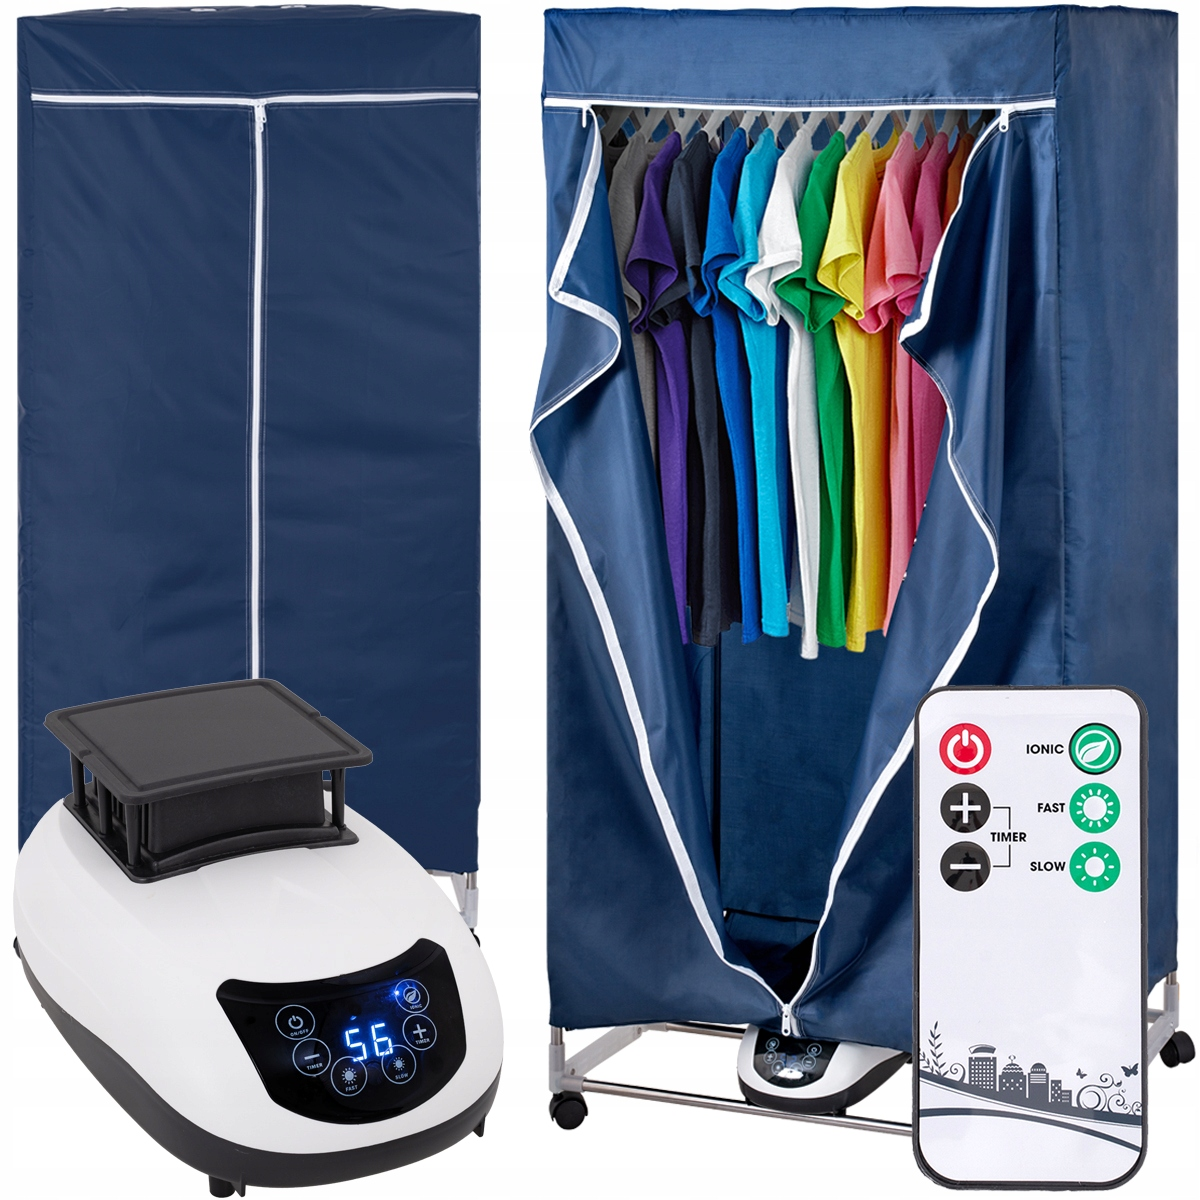 ELECTRIC LAUNDRY DRYER 1200W 4in1 240minutes